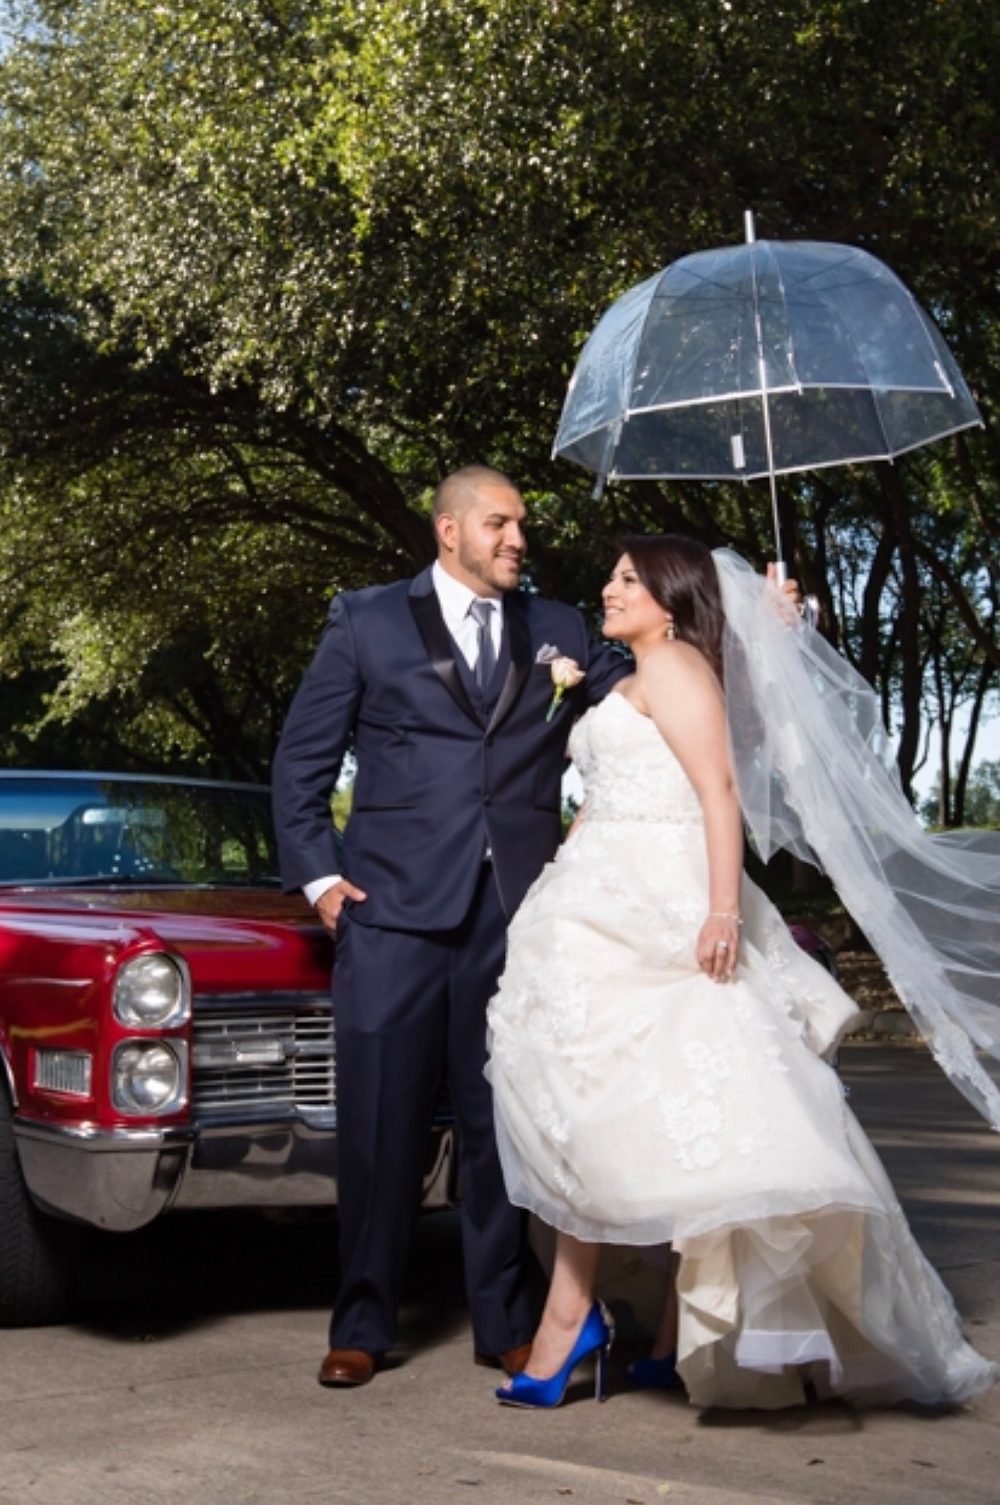 rainy wedding day with bride and groom